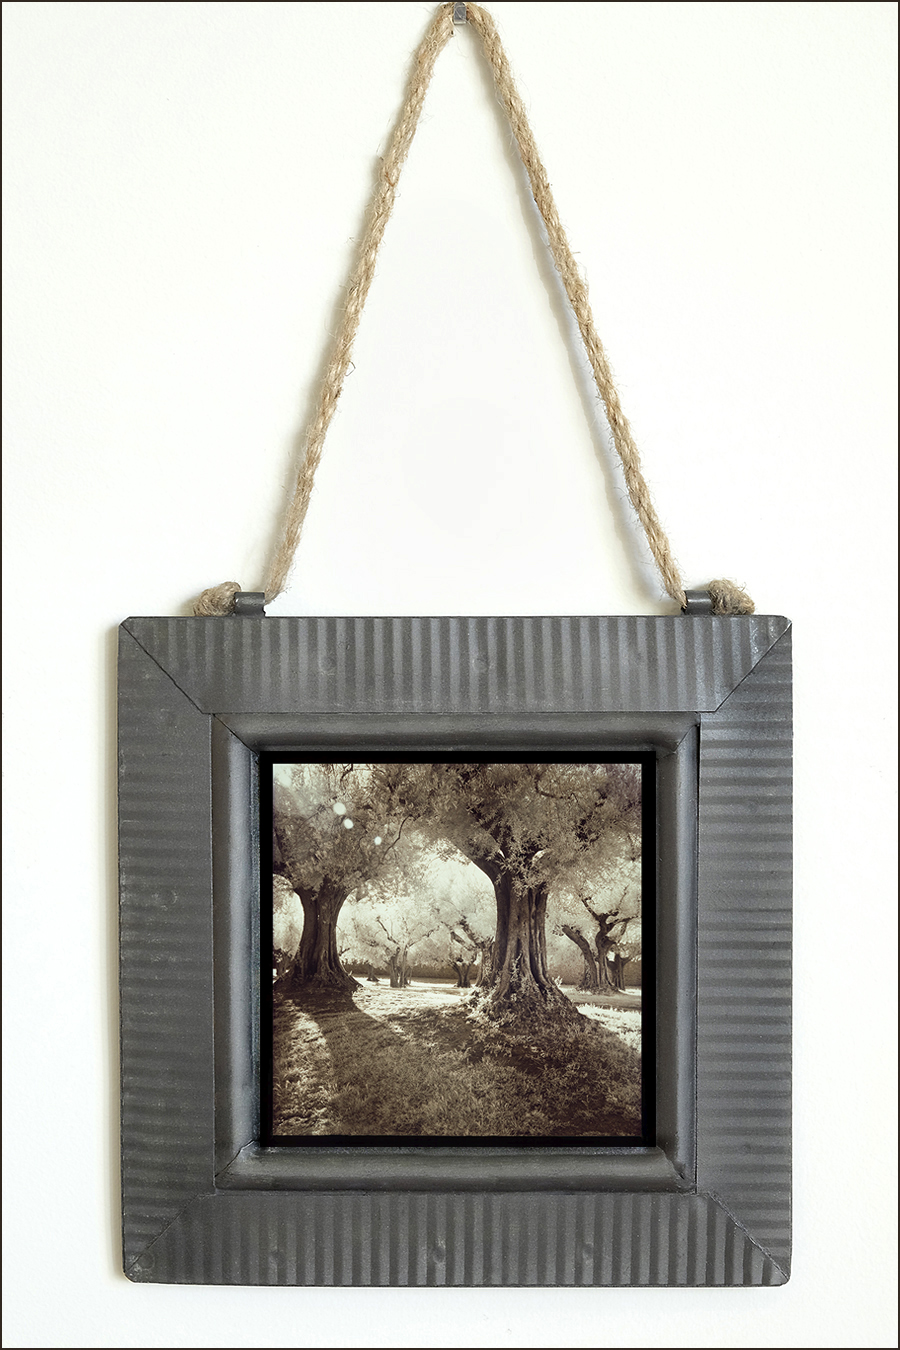 Robin Davis Photography Image printed on metal and framed in tin - image is from her favorite magical olive grove near Cortona Italy and all effects are done totally in camera with infrared sensor